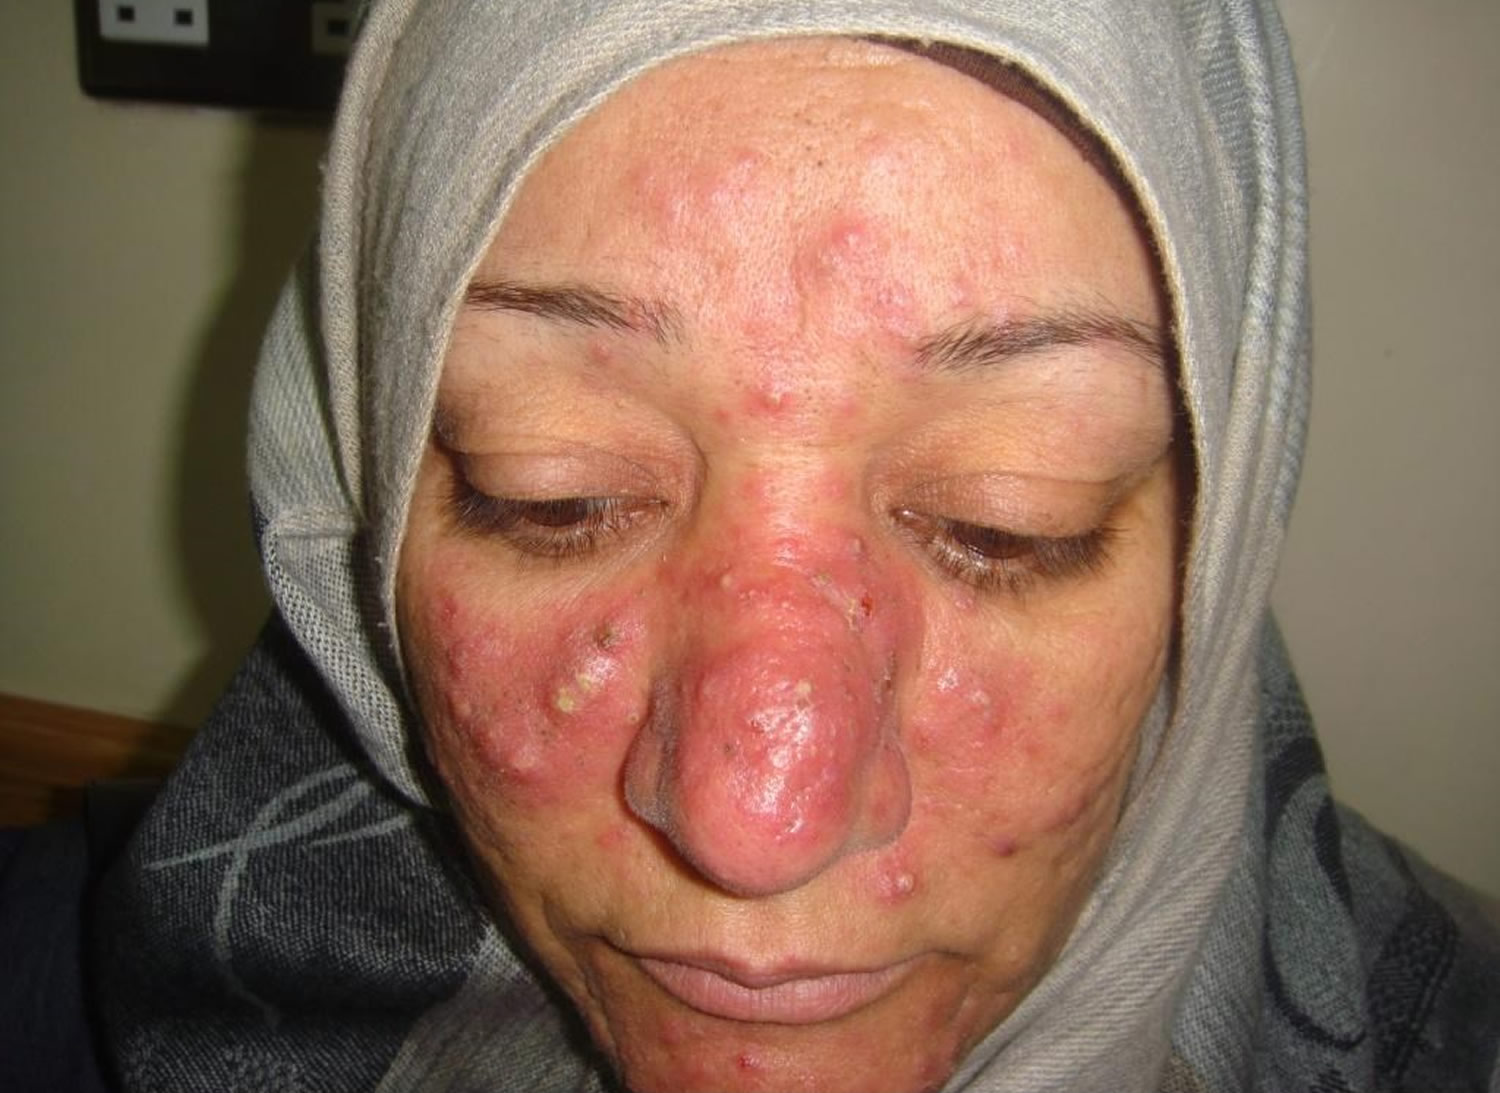 Forum on this topic: Does H. Pylori Cause Rosacea, does-h-pylori-cause-rosacea/